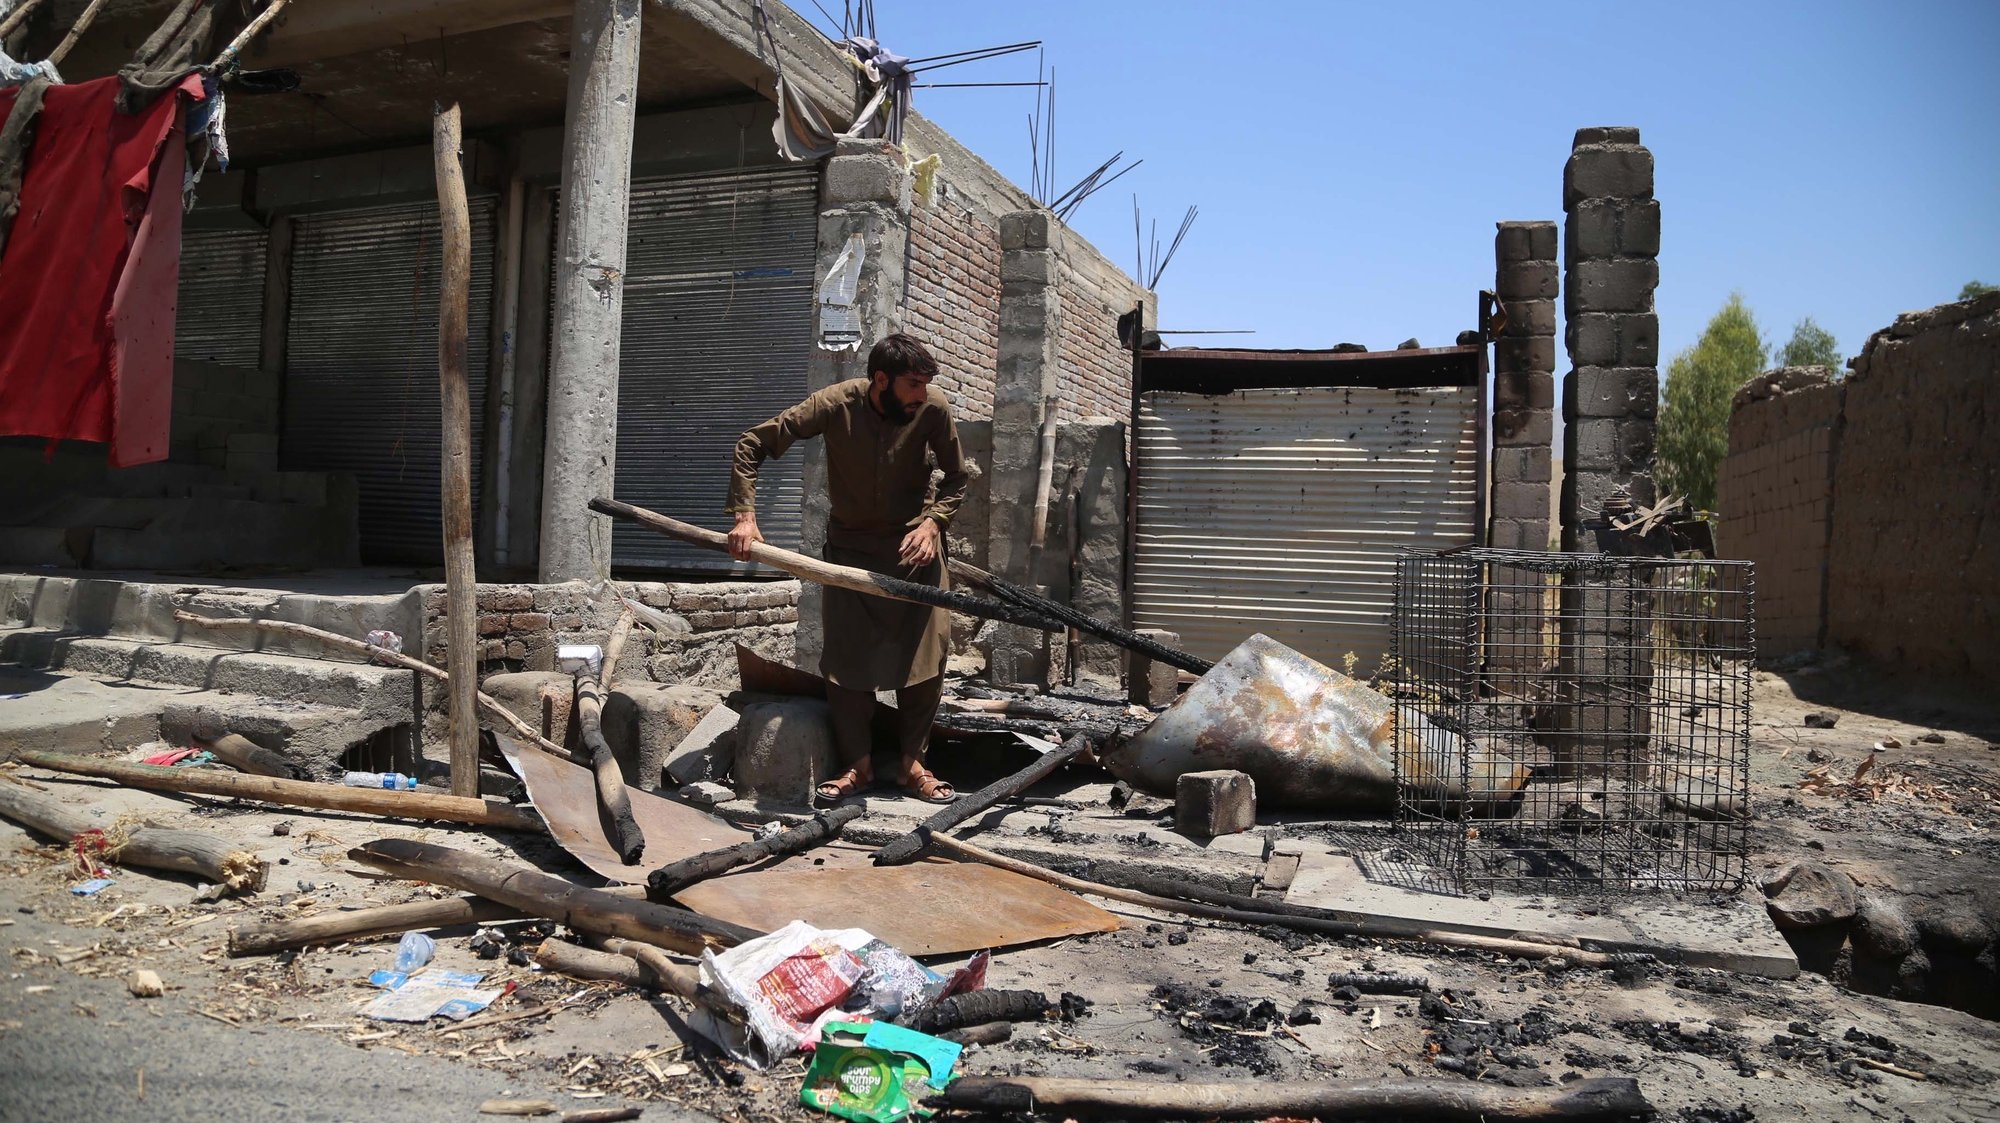 epa09330986 An Afghan man salvages his belongings from his shop that was burnt out during an operation against Taliban militants after security forces cleared the area of Taliban militants following an operation in Alishang district of Laghman province, Afghanistan, 08 July 2021. The Afghan government 06 July, confirmed that the insurgents had captured more than 100 of the country's 400 districts, which it blamed on a lack of military support to the Afghan forces after the pullout of international troops. The United States and NATO troops began the final stages of withdrawal more than two months ago, ending a 20-year mission and handing over nearly all military bases to the Afghan army.  EPA/GHULAMULLAH HABIBI